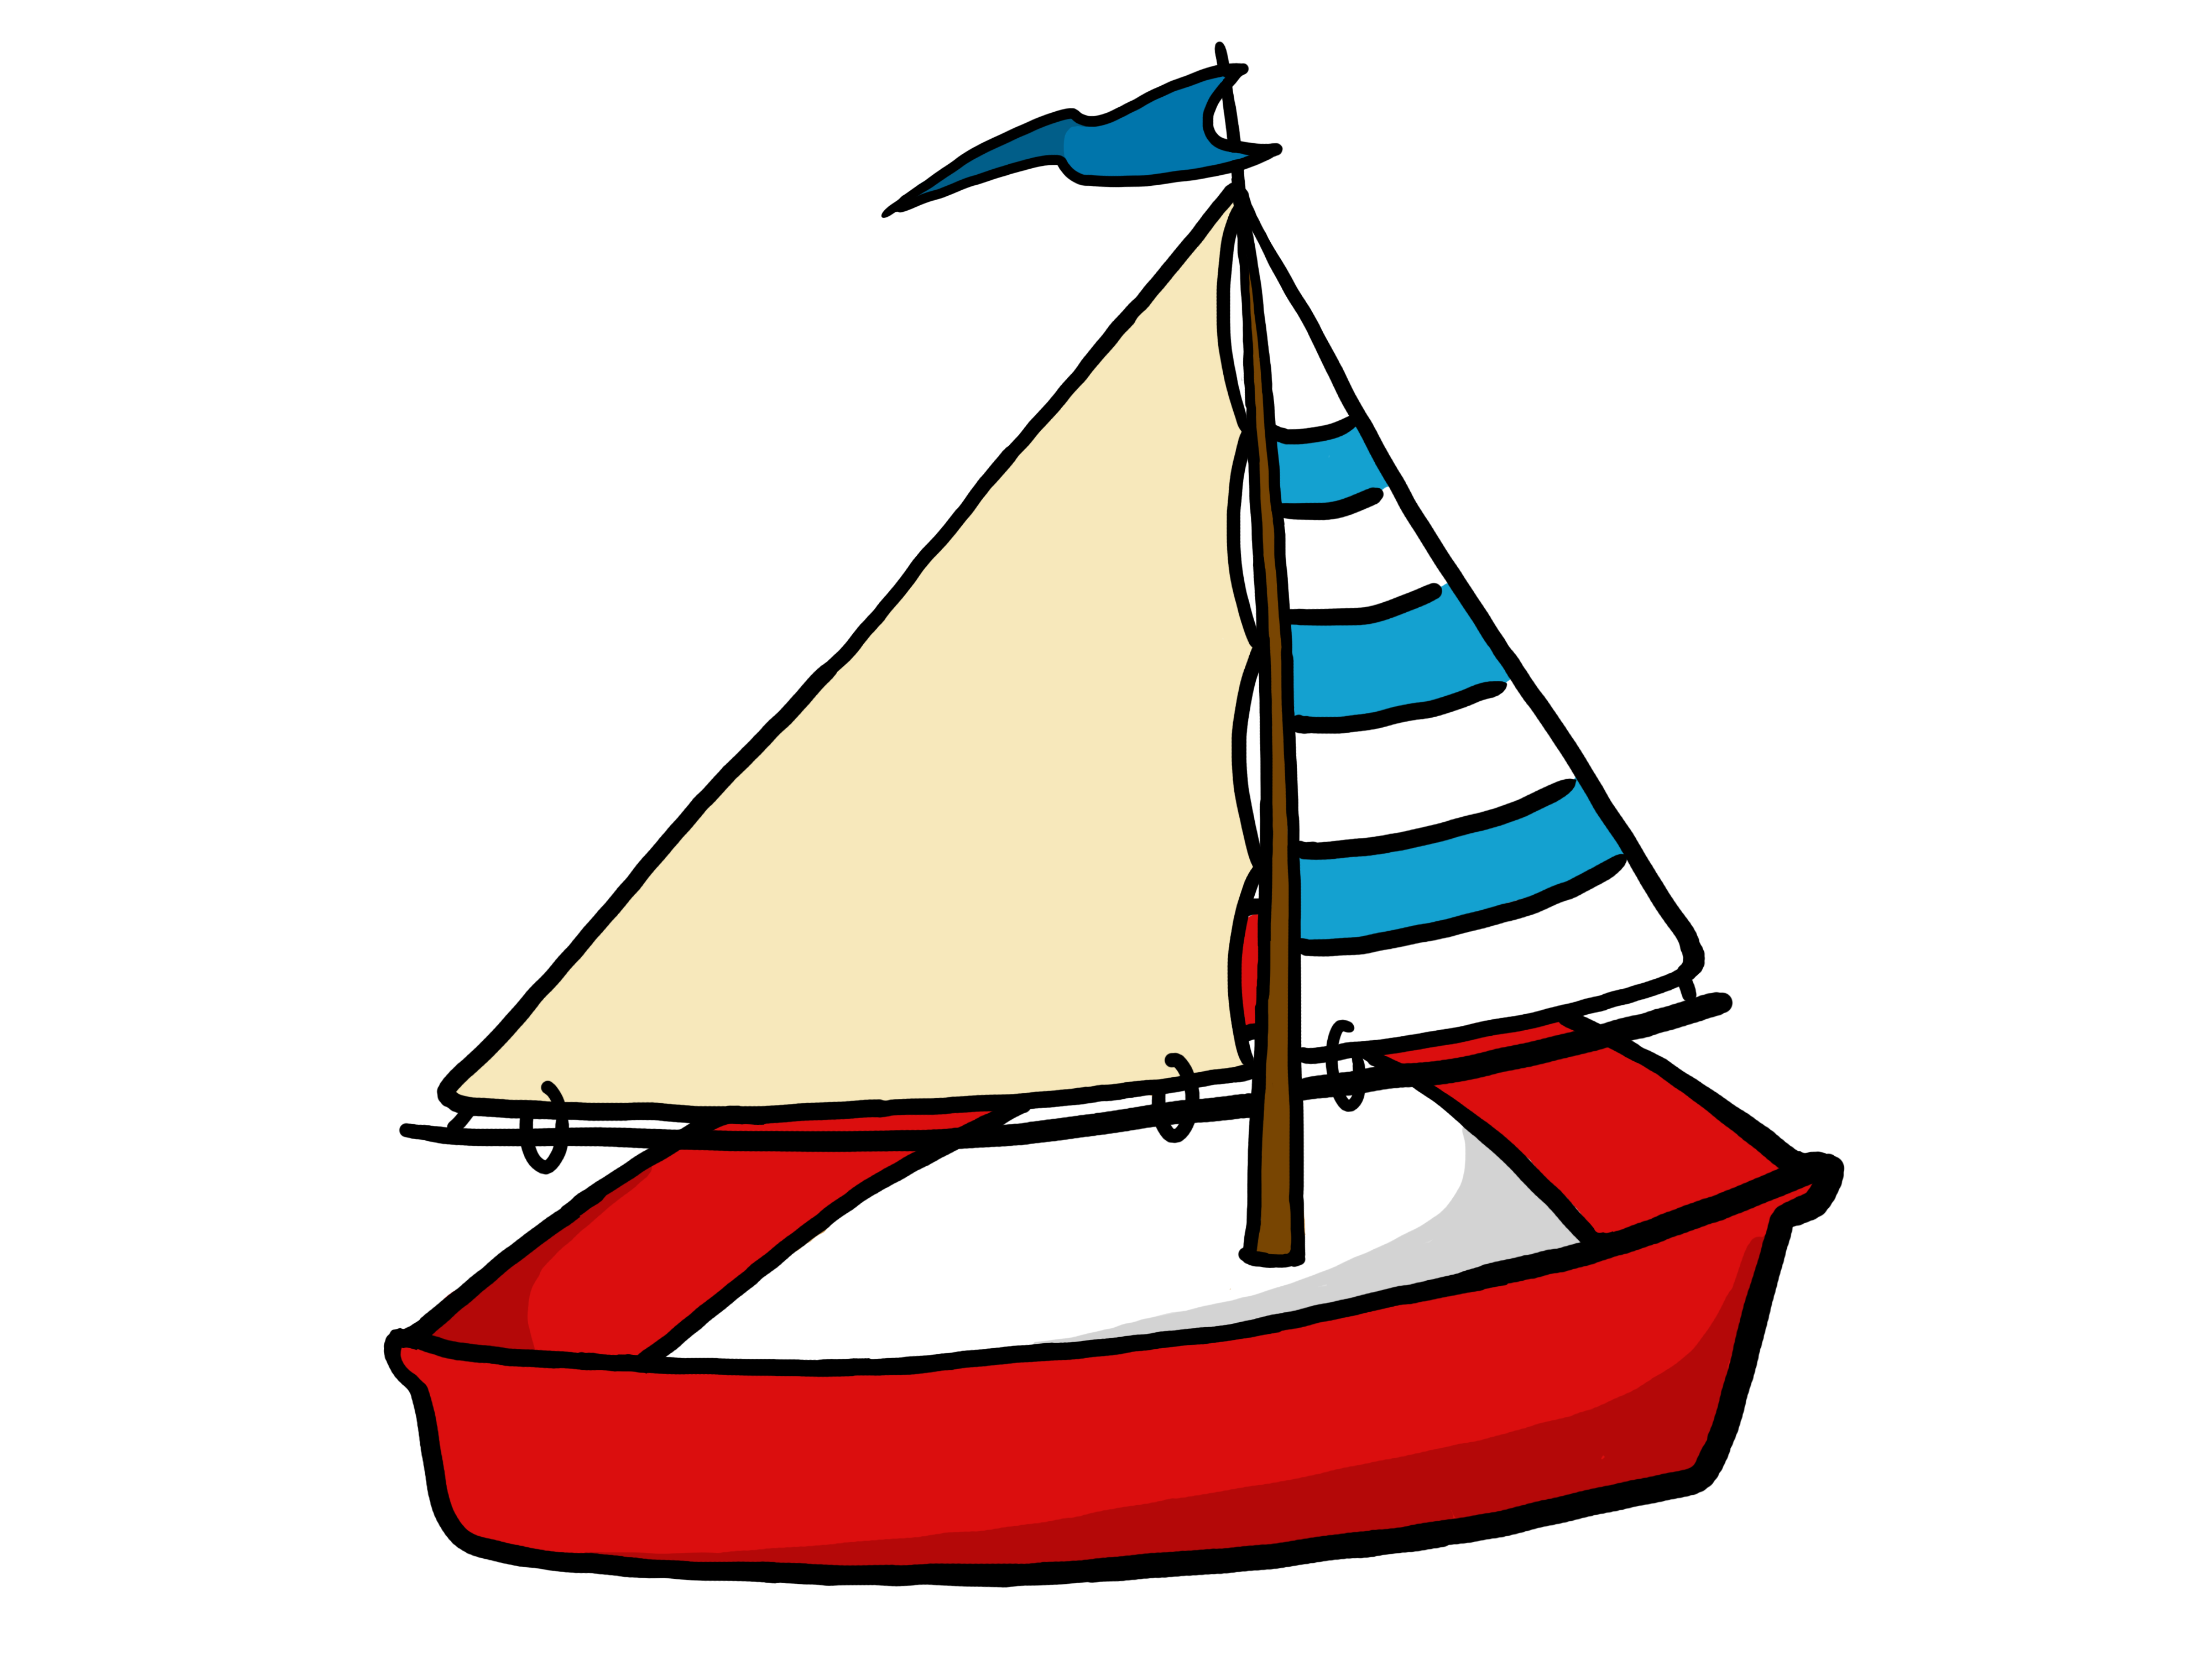 Cartoon Ship.png - ClipArt Best - Cliparts.co